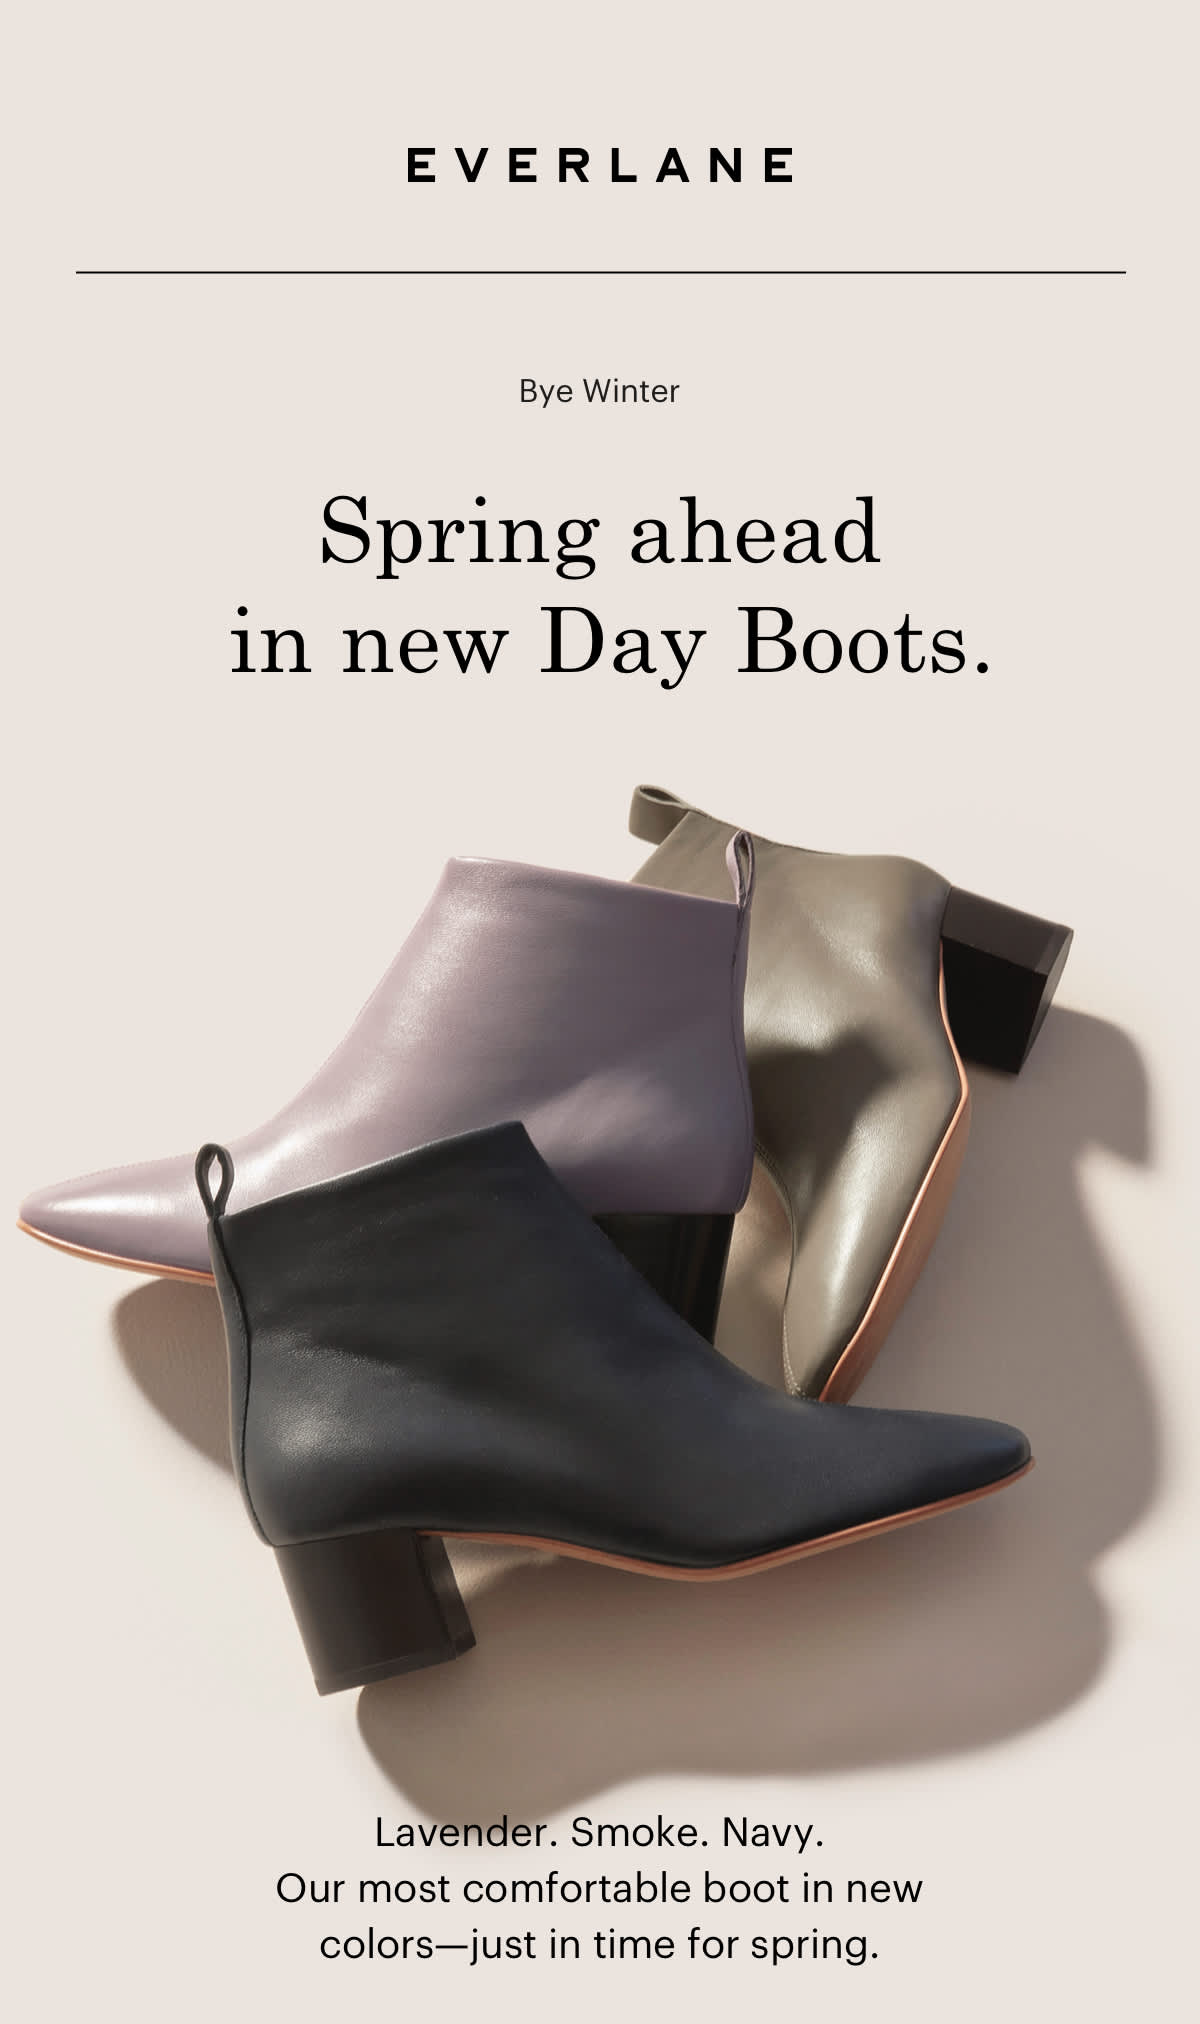 Spring ahead in new Day Boots.